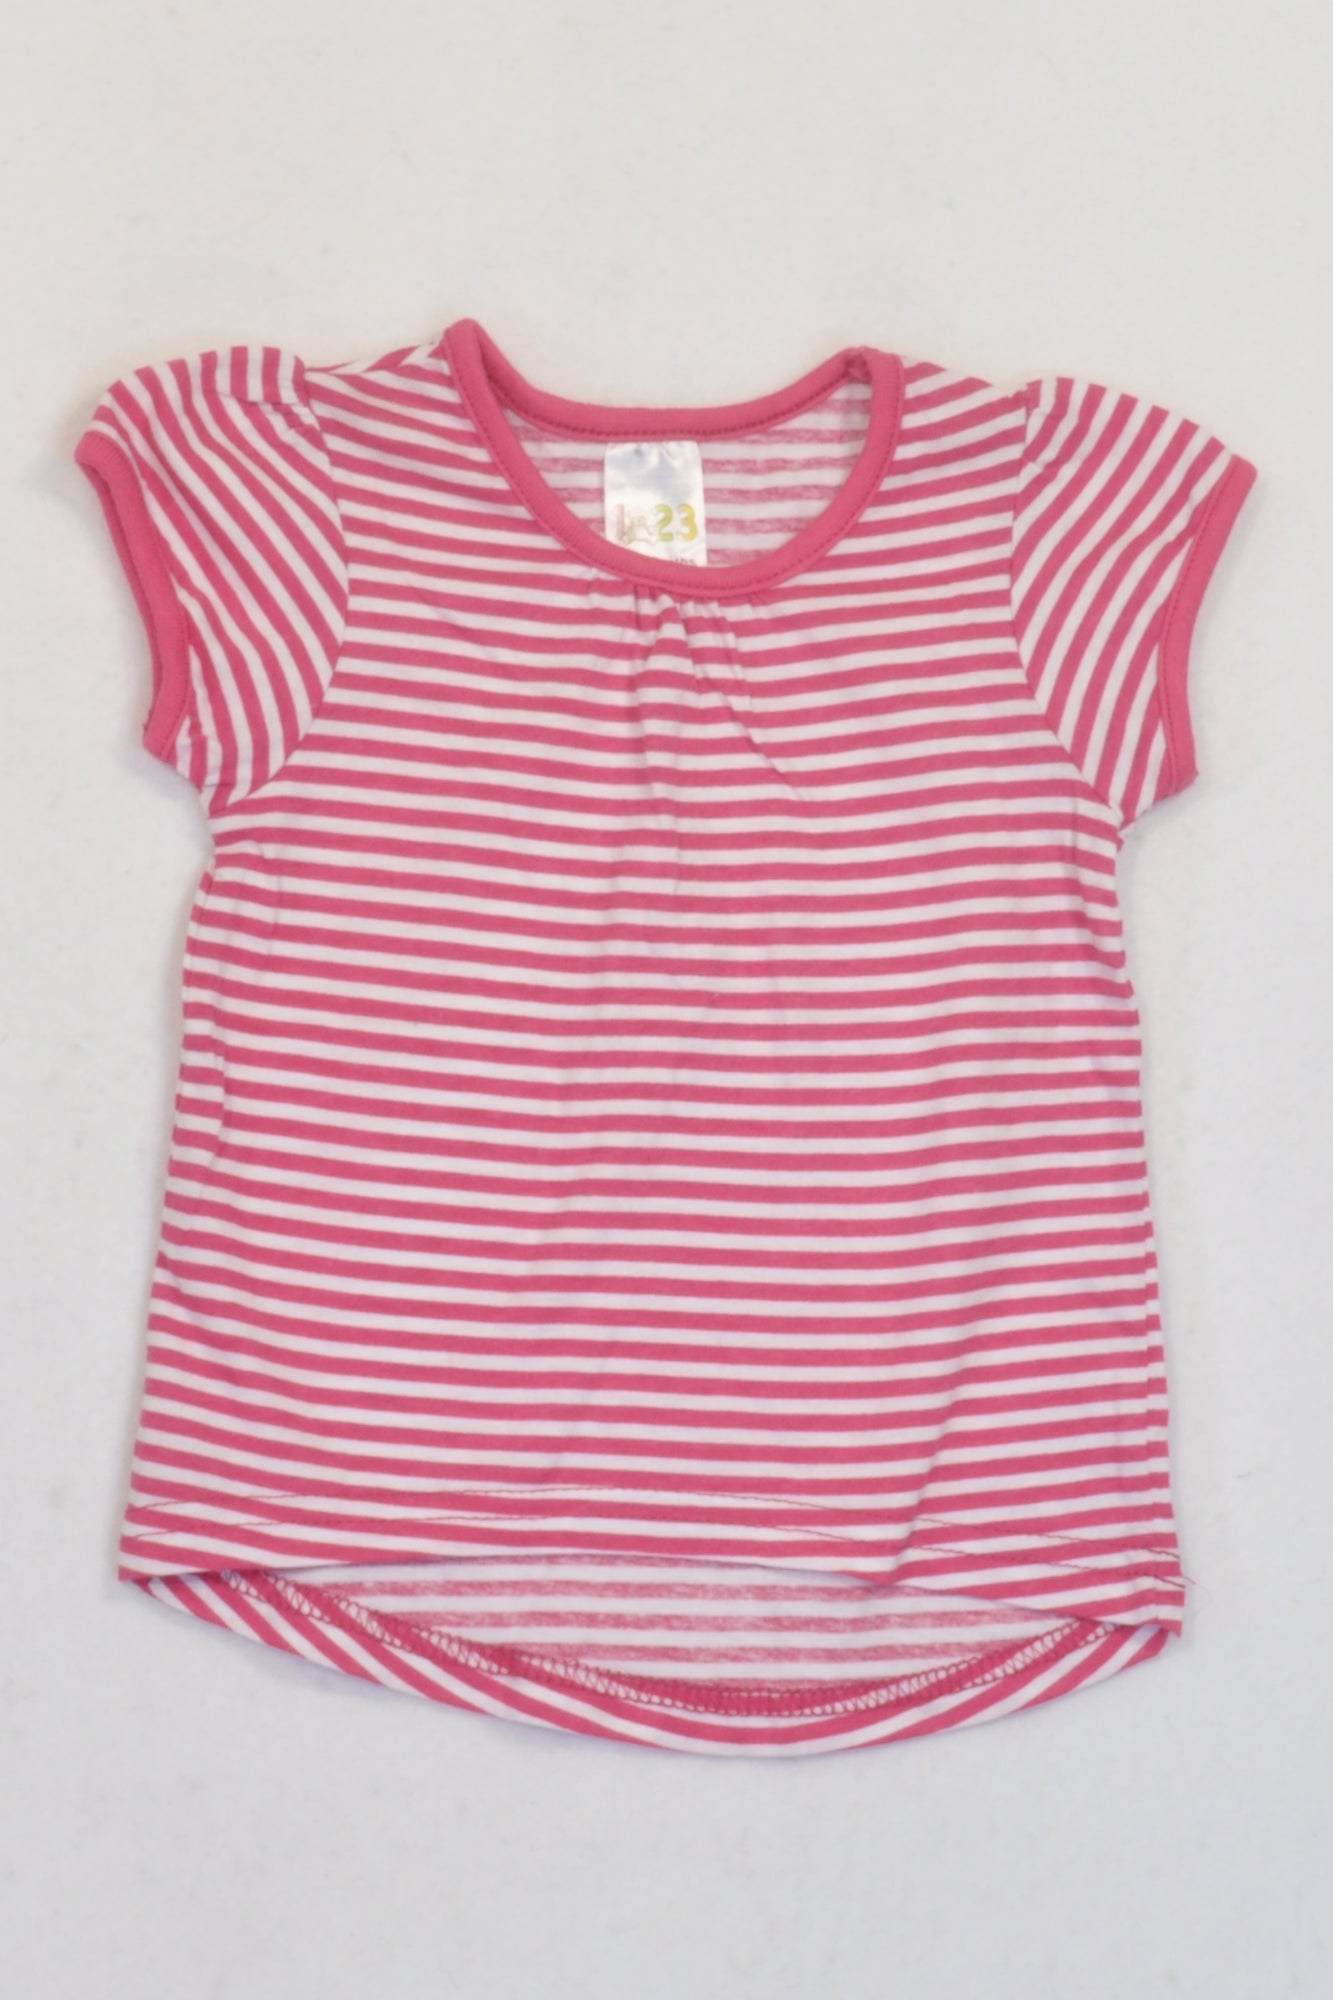 Edgars Pink & White Stripe T-shirt Girls 6-9 months